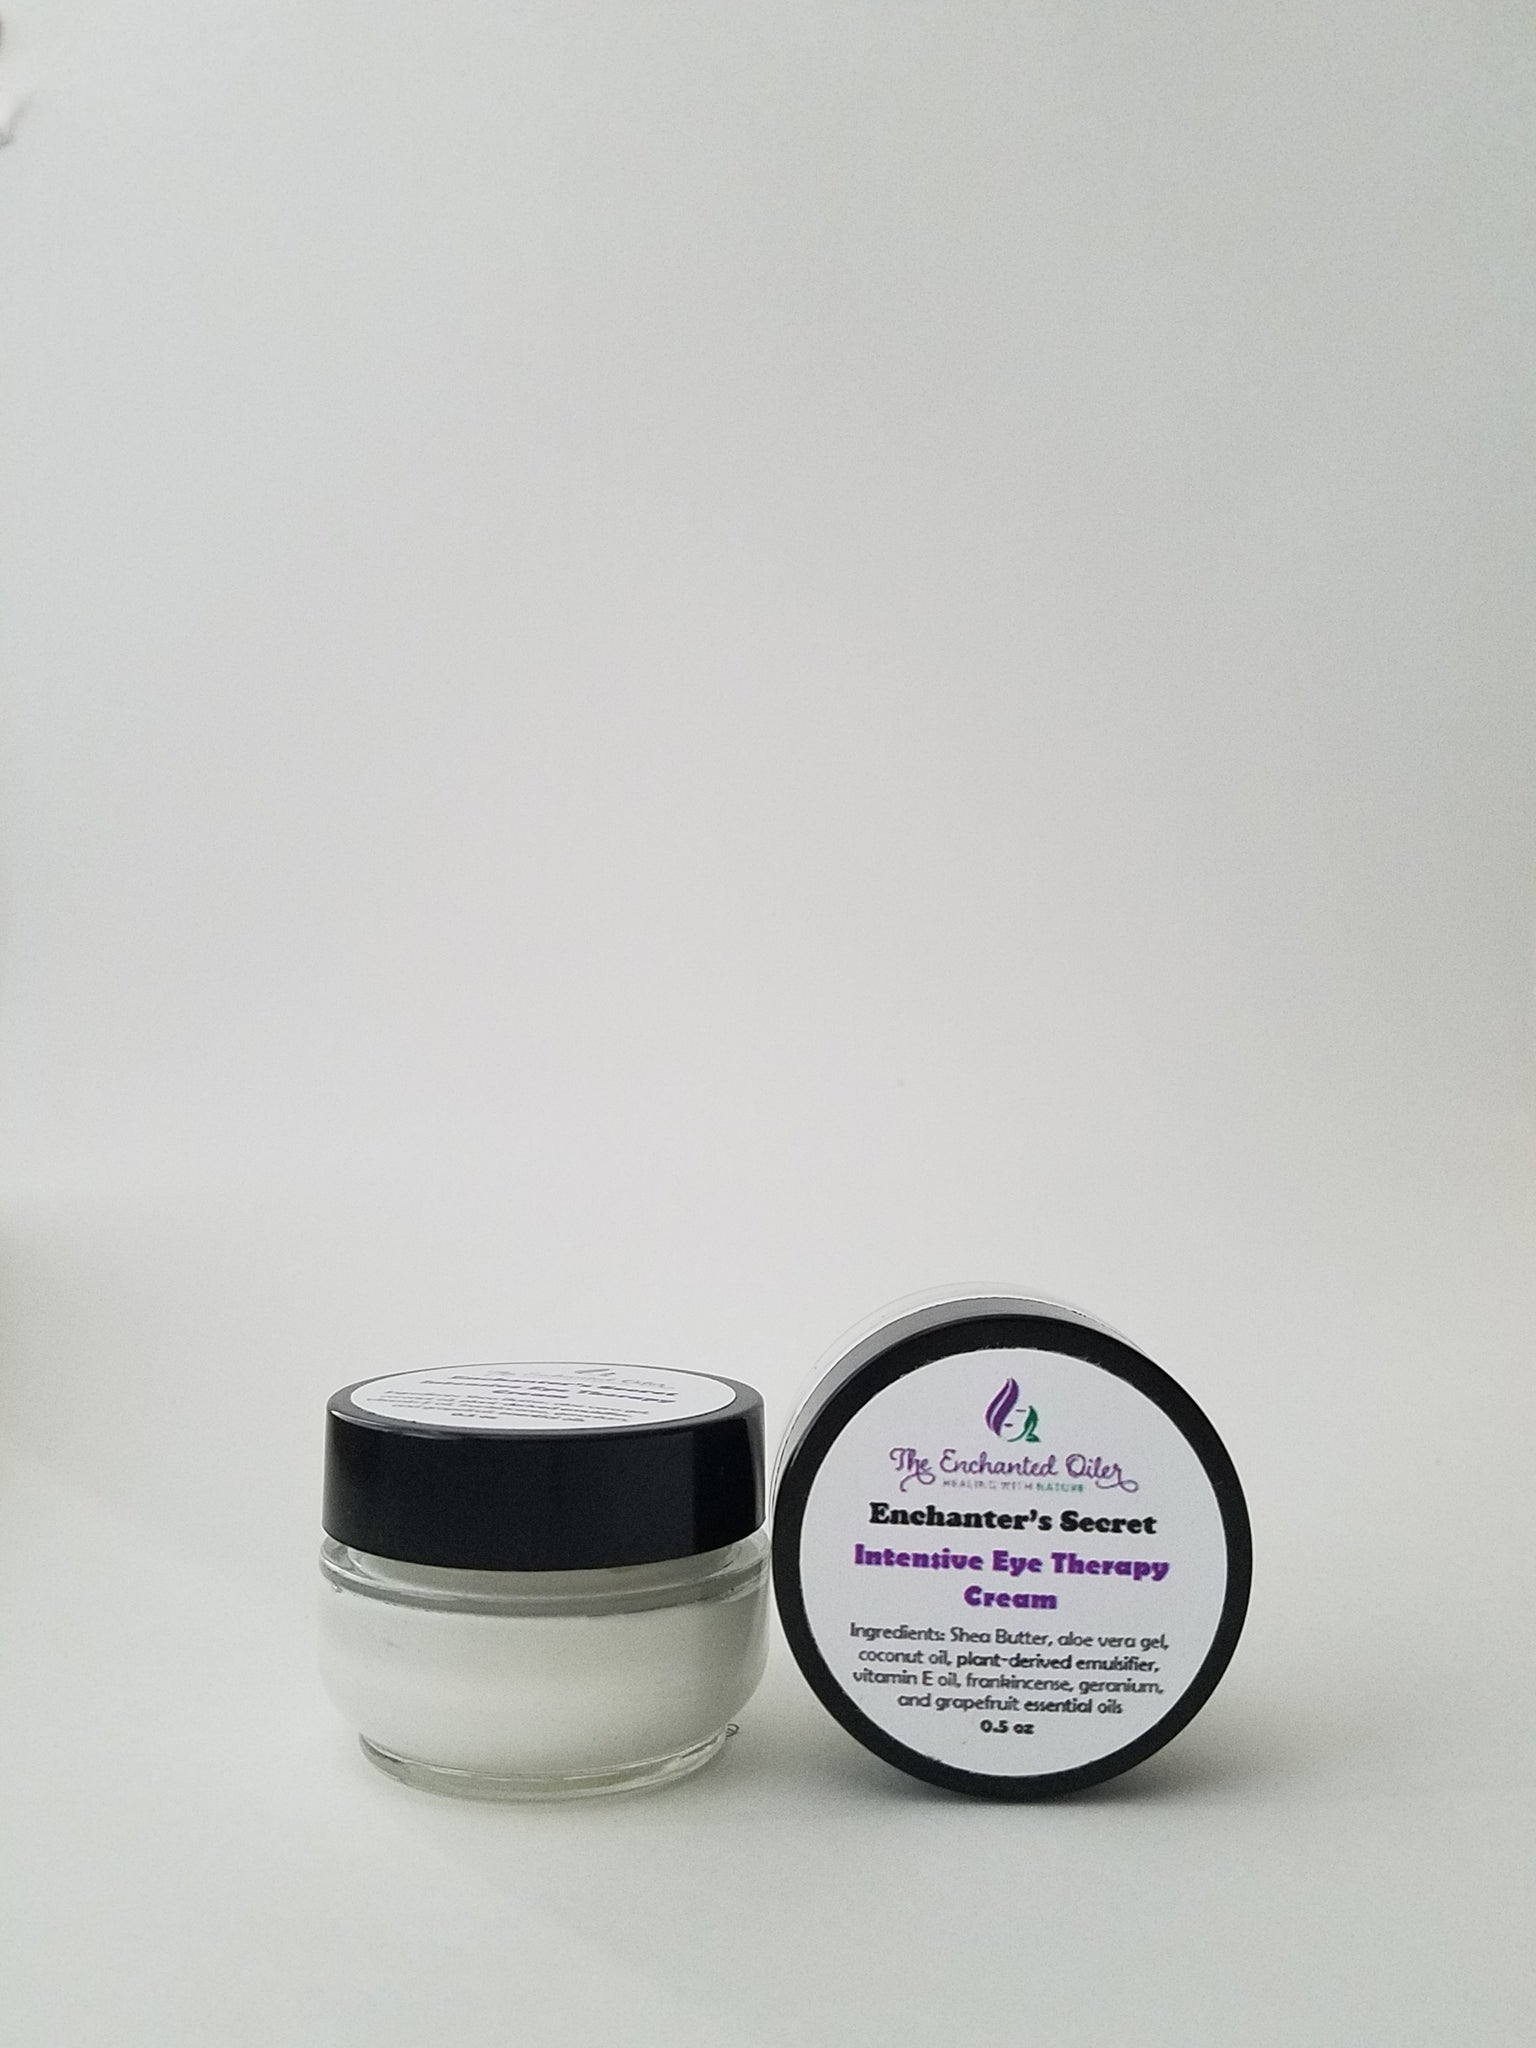 Enchanter's Secret Intensive Eye Cream